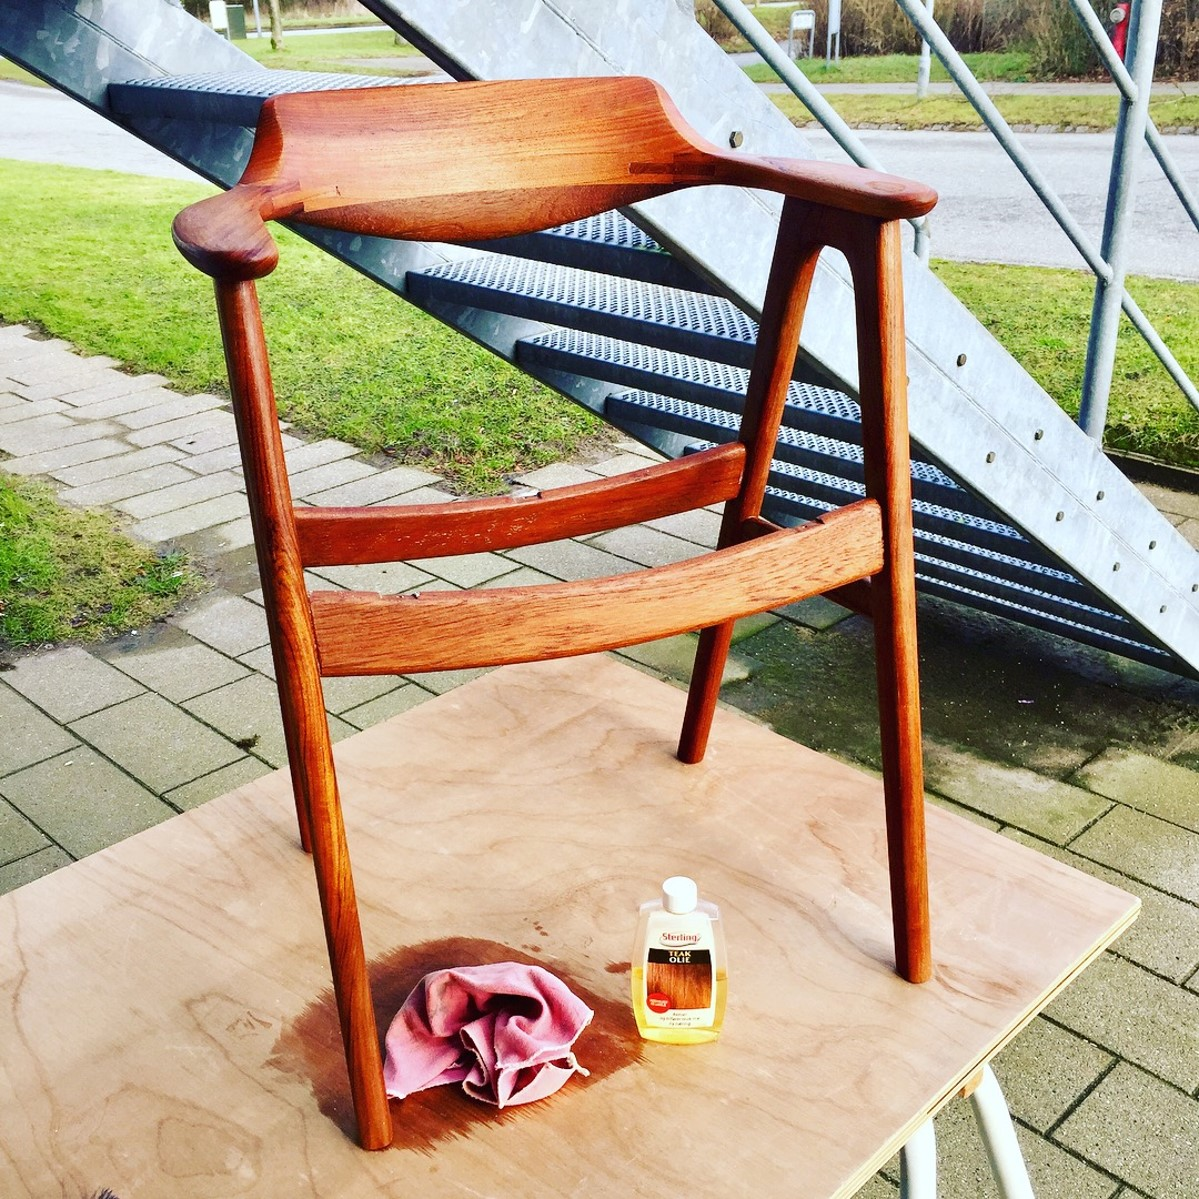 Continue until the entire chair has received an even coating of Sterling Teak Oil. The process can be repeated but remember to let the oil soak properly into the wood.